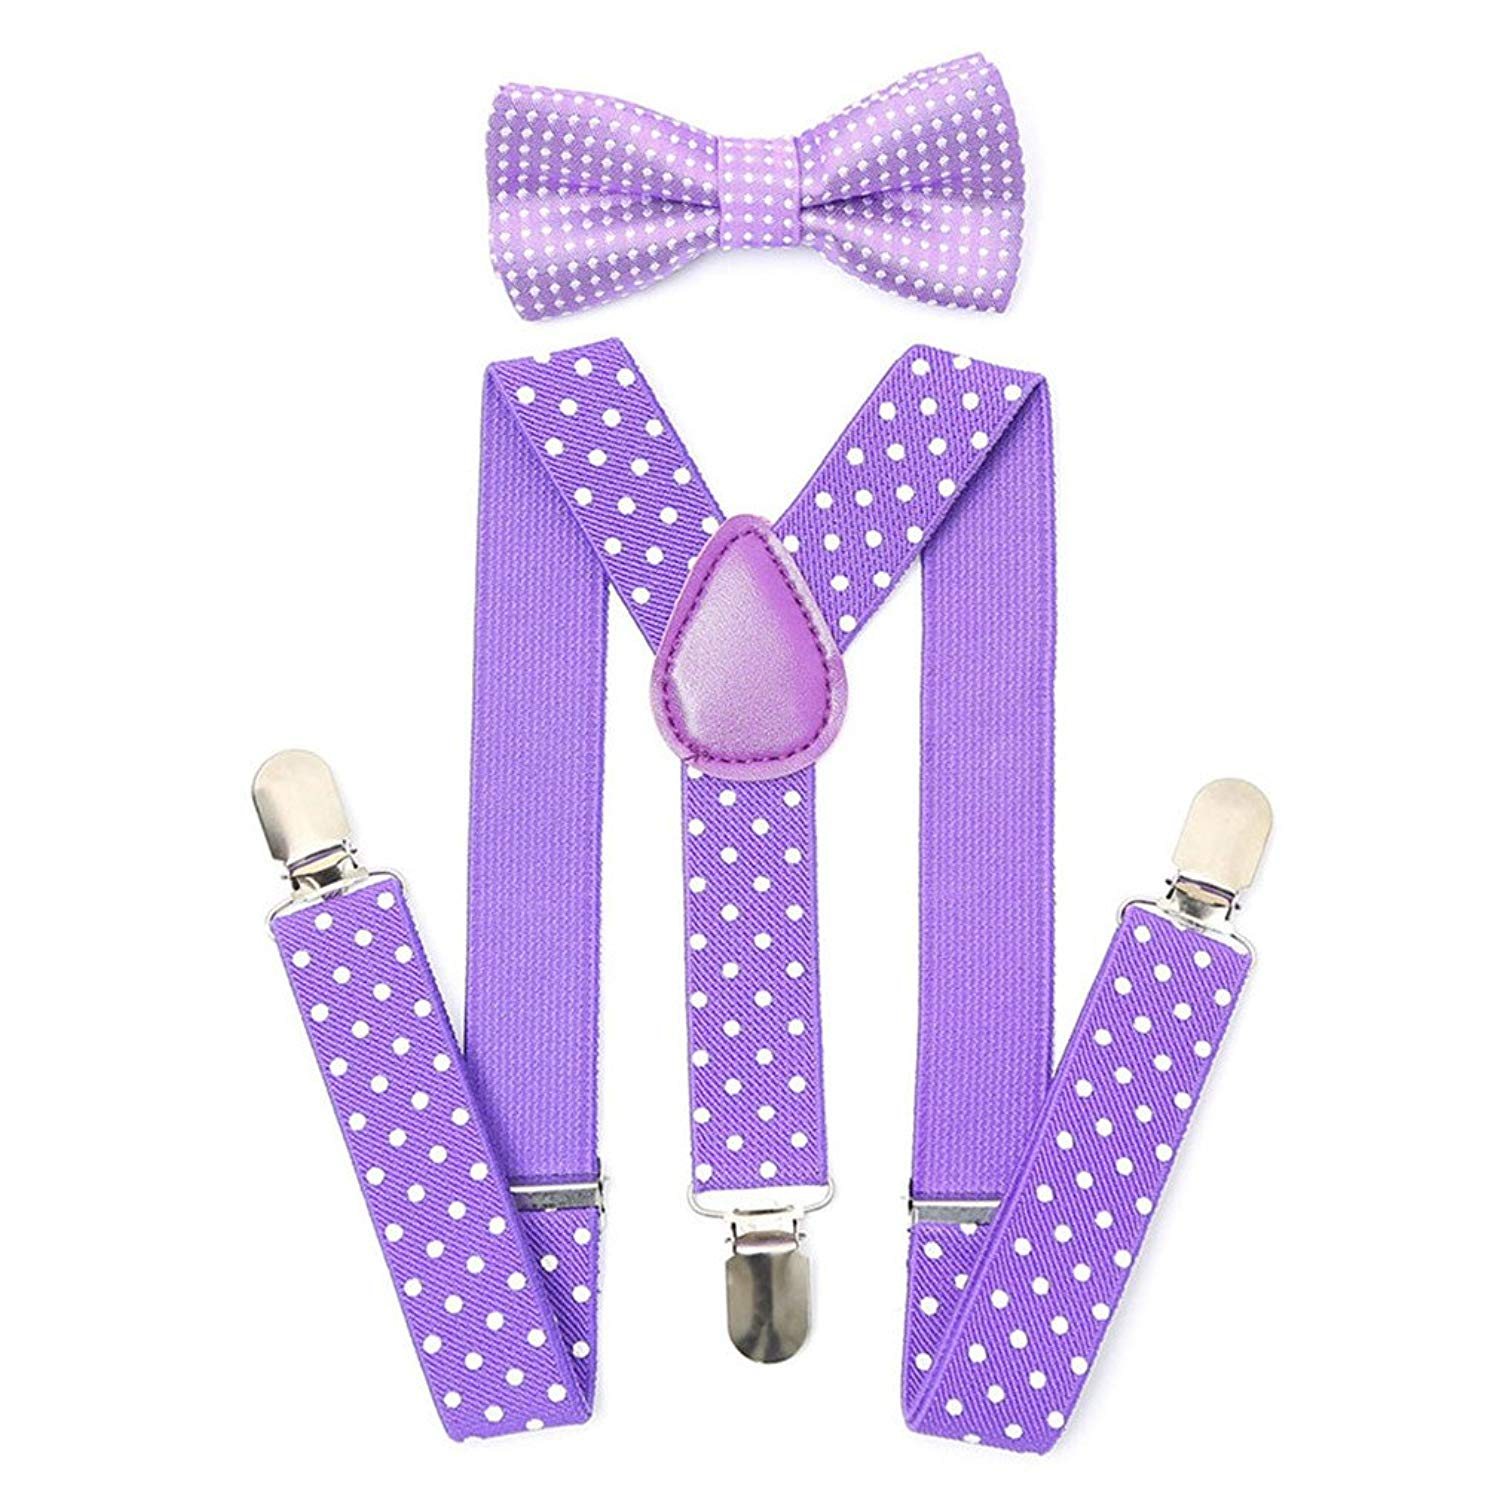 Button End Suspenders Kids/Boys Girls Toddler Baby Leather Button Tabs